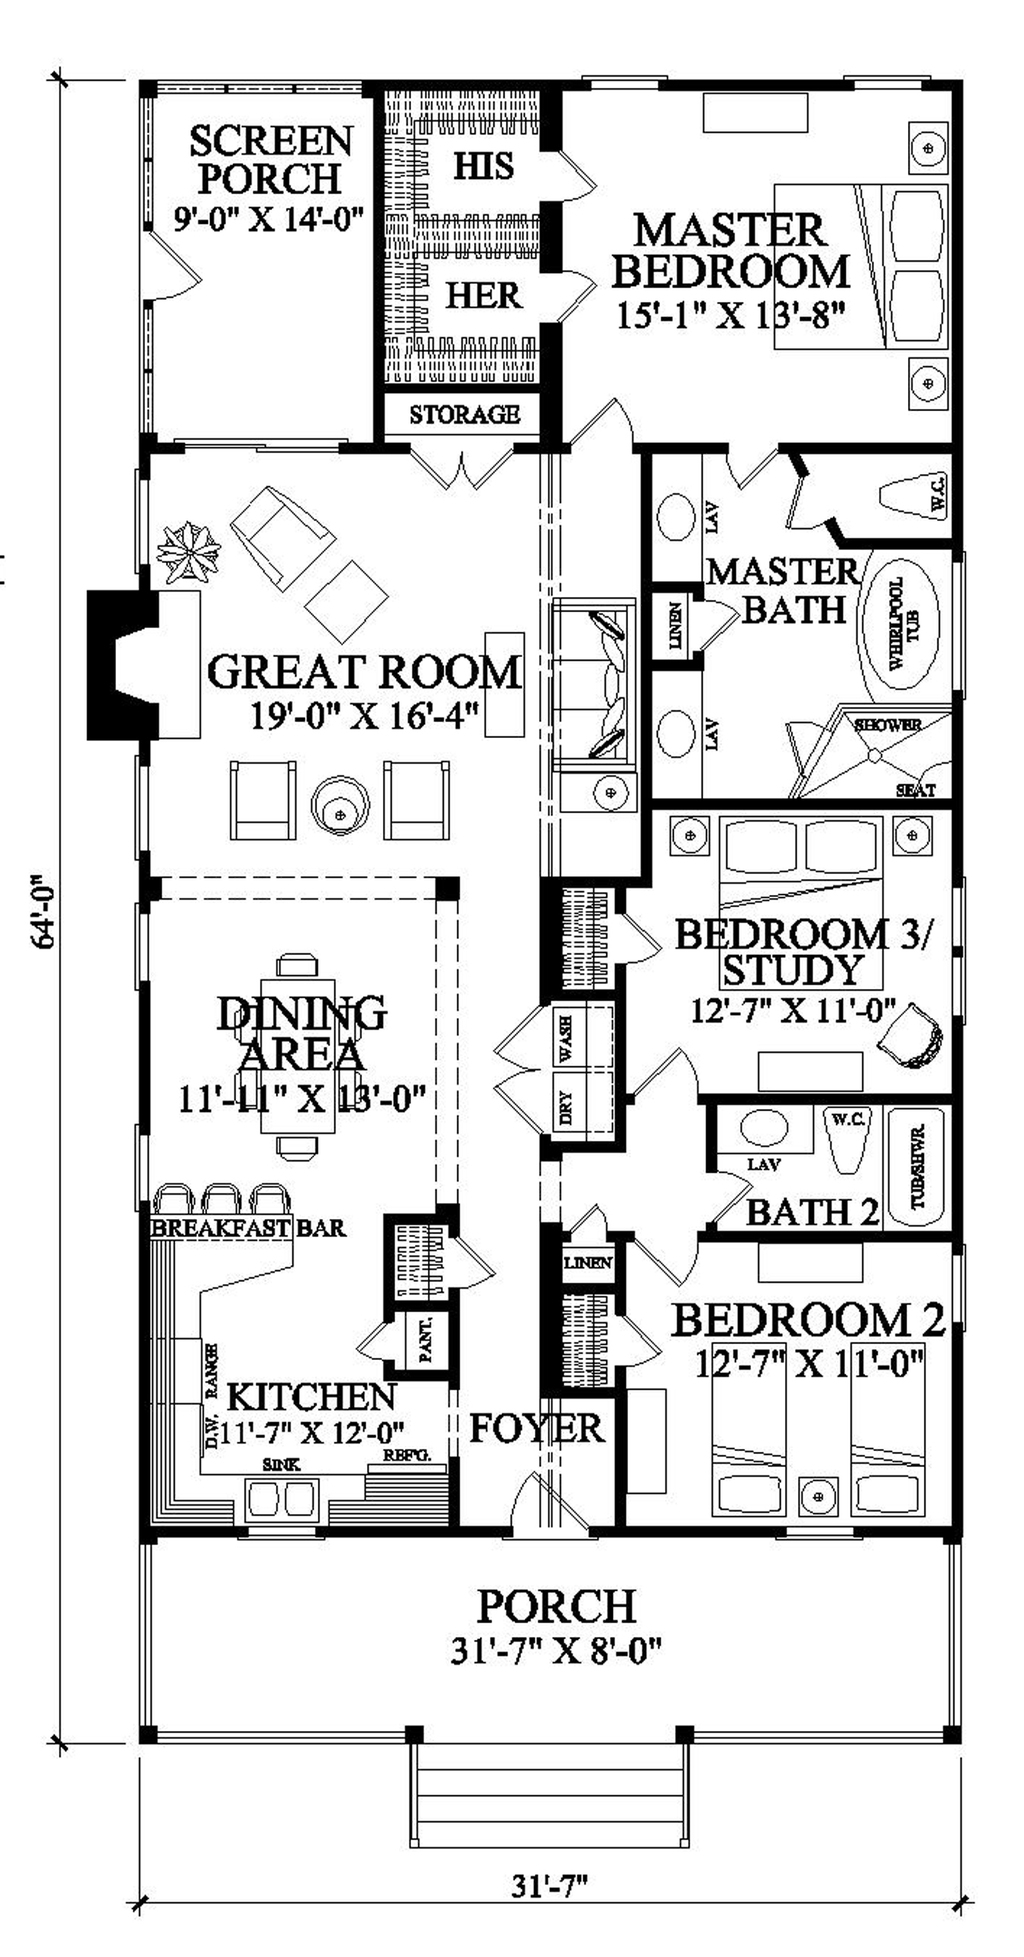 House plan 137 21 from for Www houseplans com